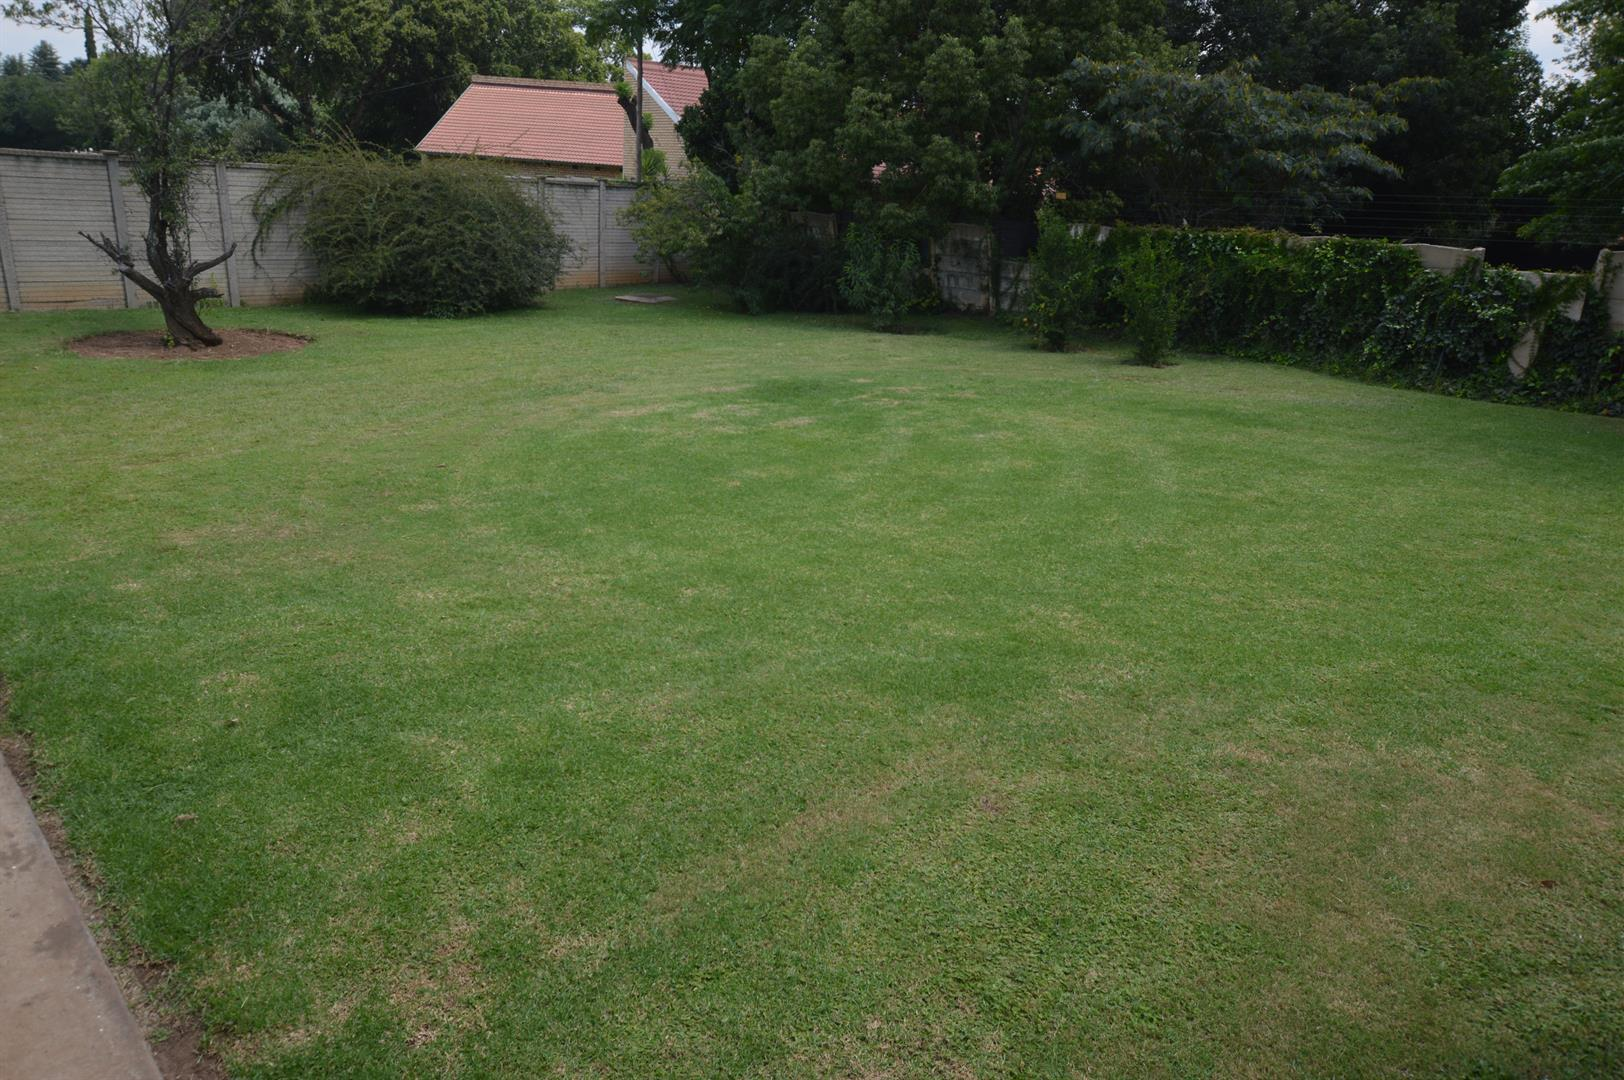 Vanderbijlpark Sw 5 property for sale. Ref No: 13443705. Picture no 28